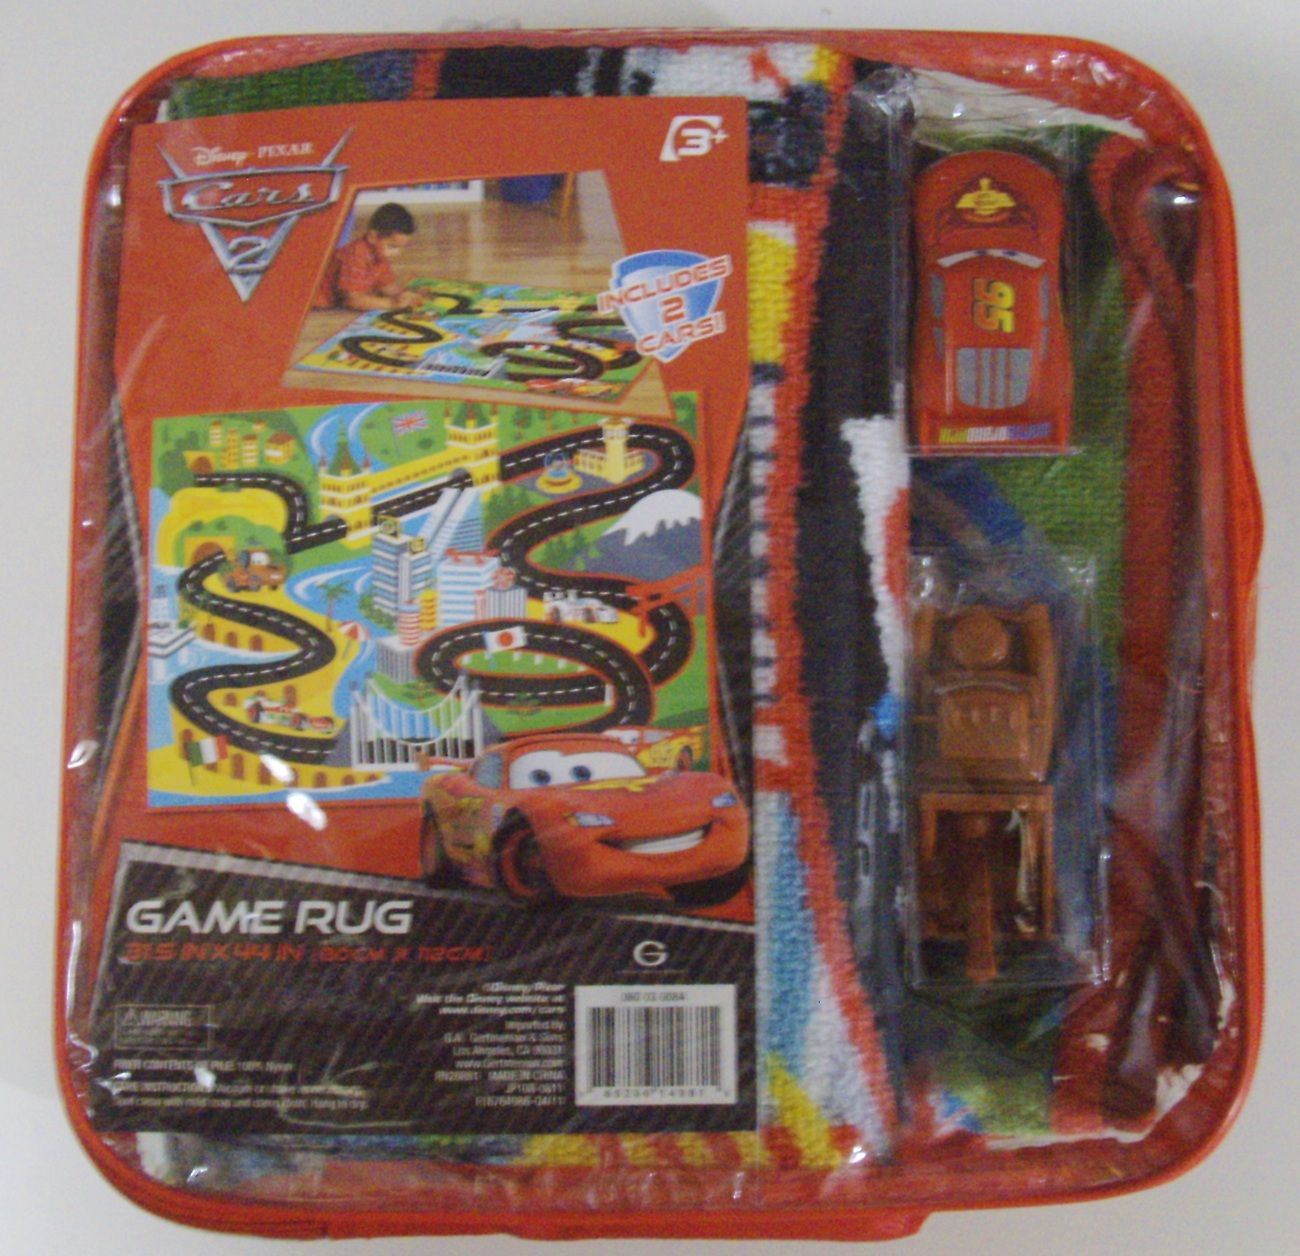 Disney Pixar Cars 2 Game Rug With Lightning McQueen And